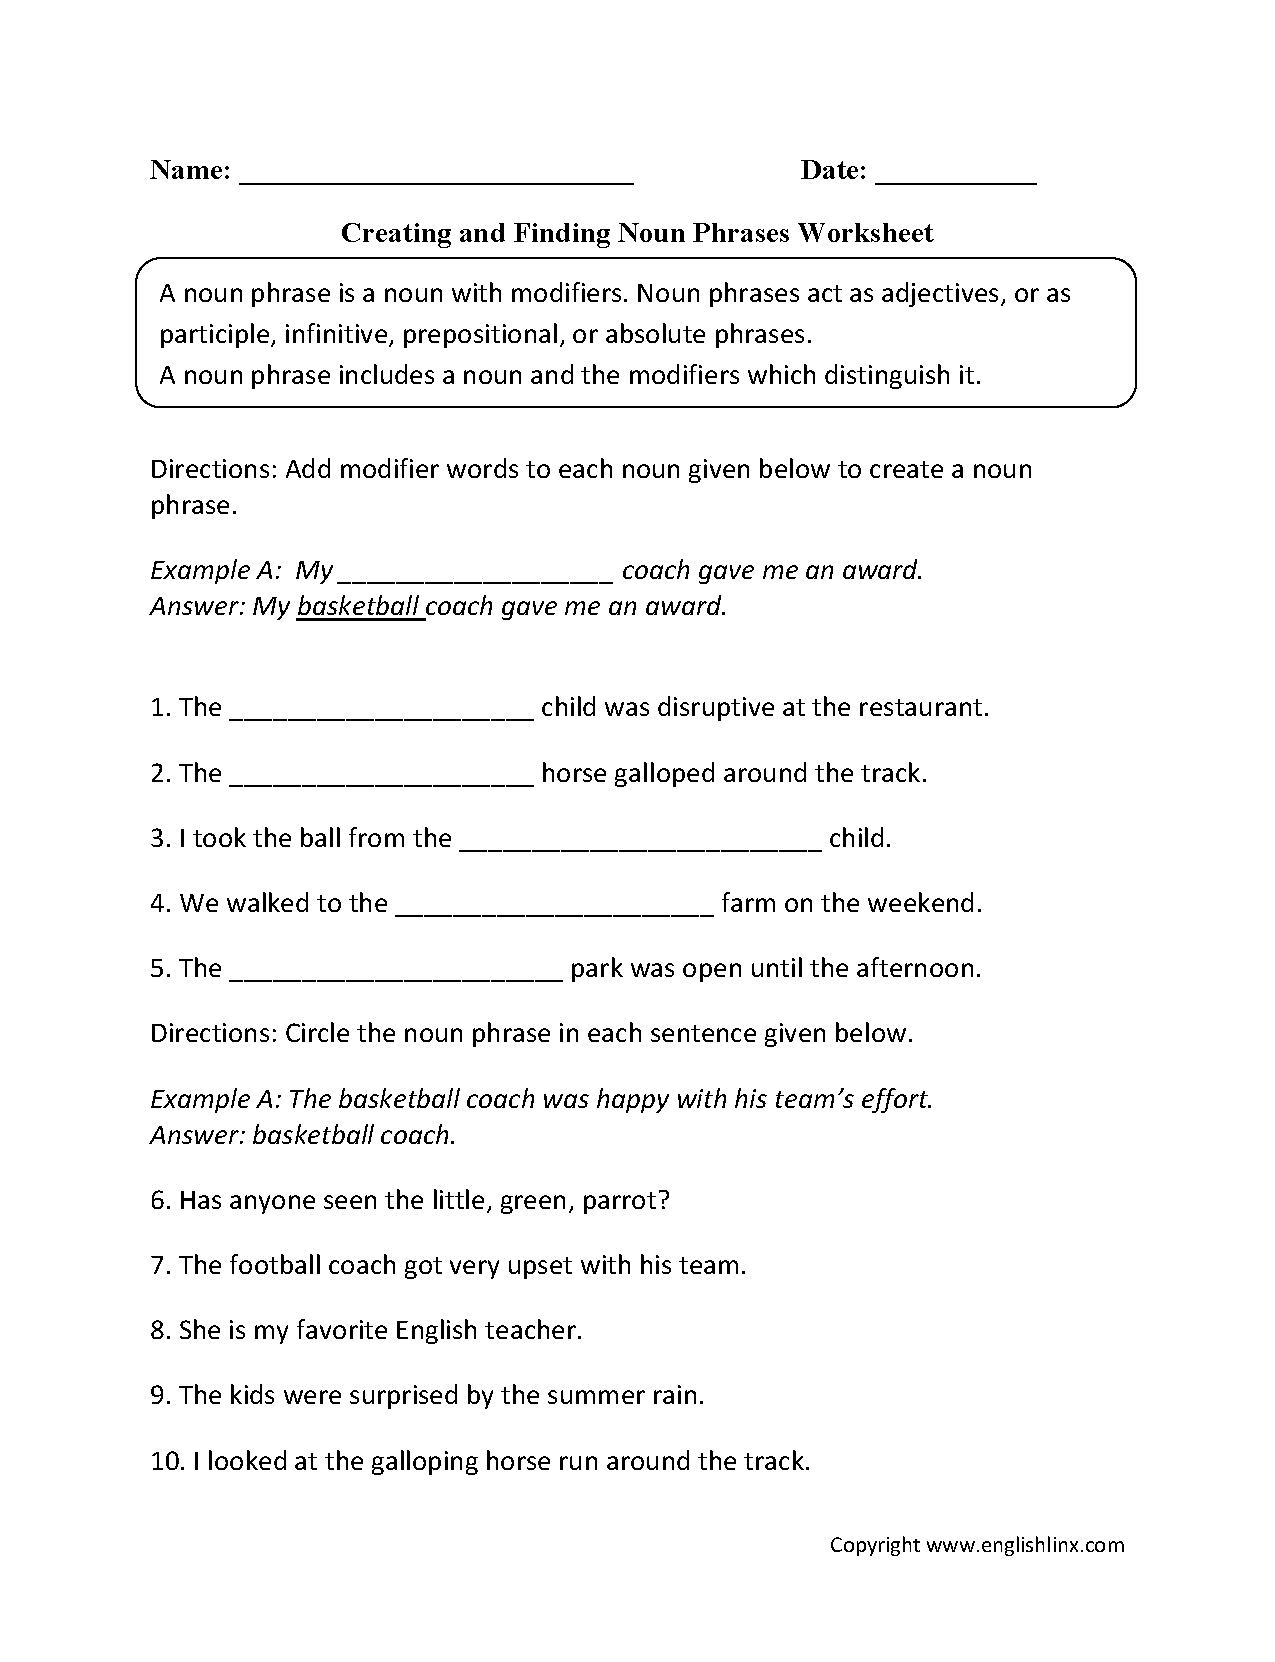 worksheet Verbs Ks1 Worksheet nouns worksheets noun phrases worksheets